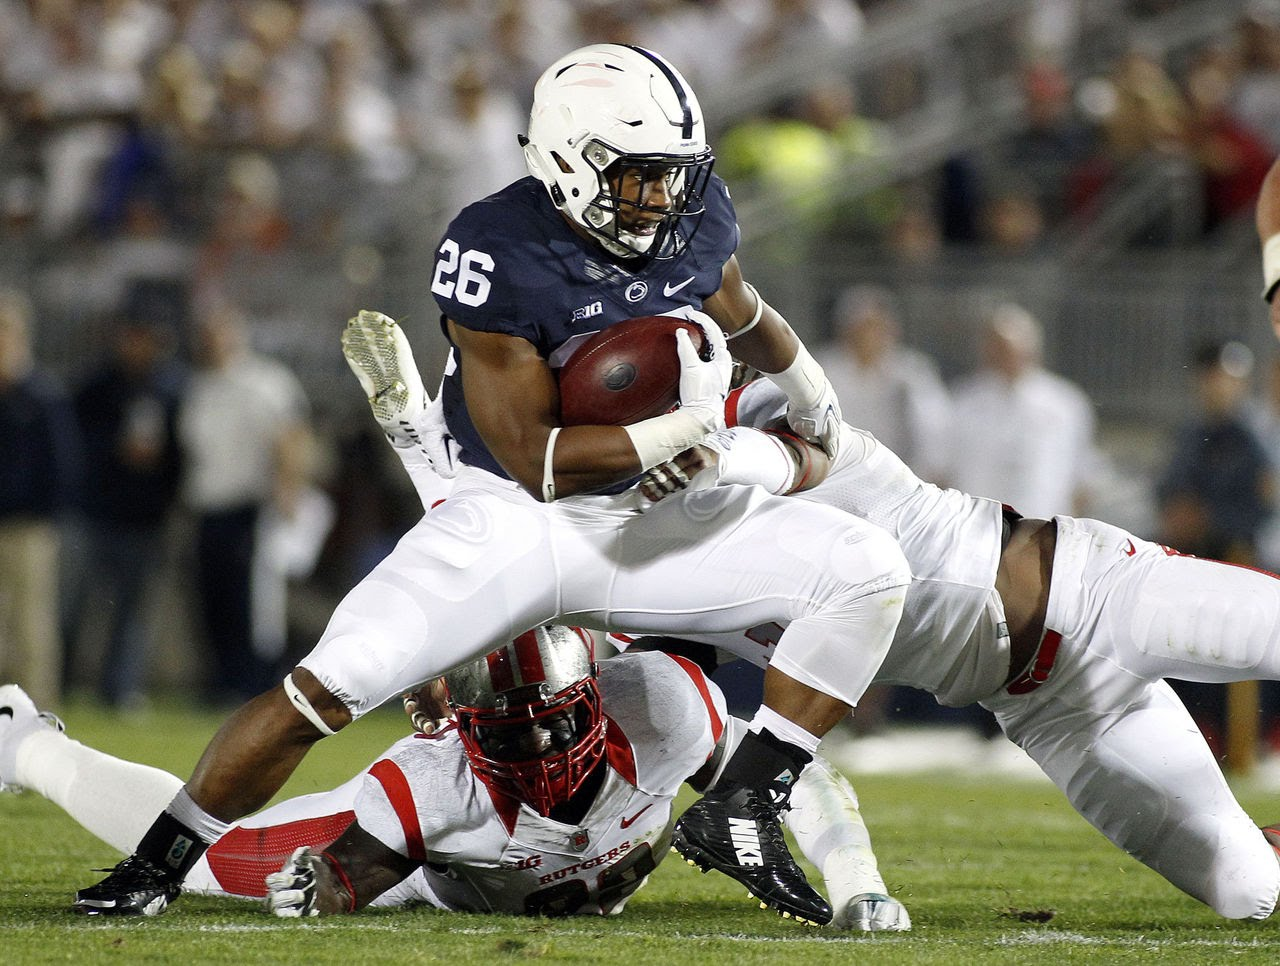 Penn State Preview: Rutgers